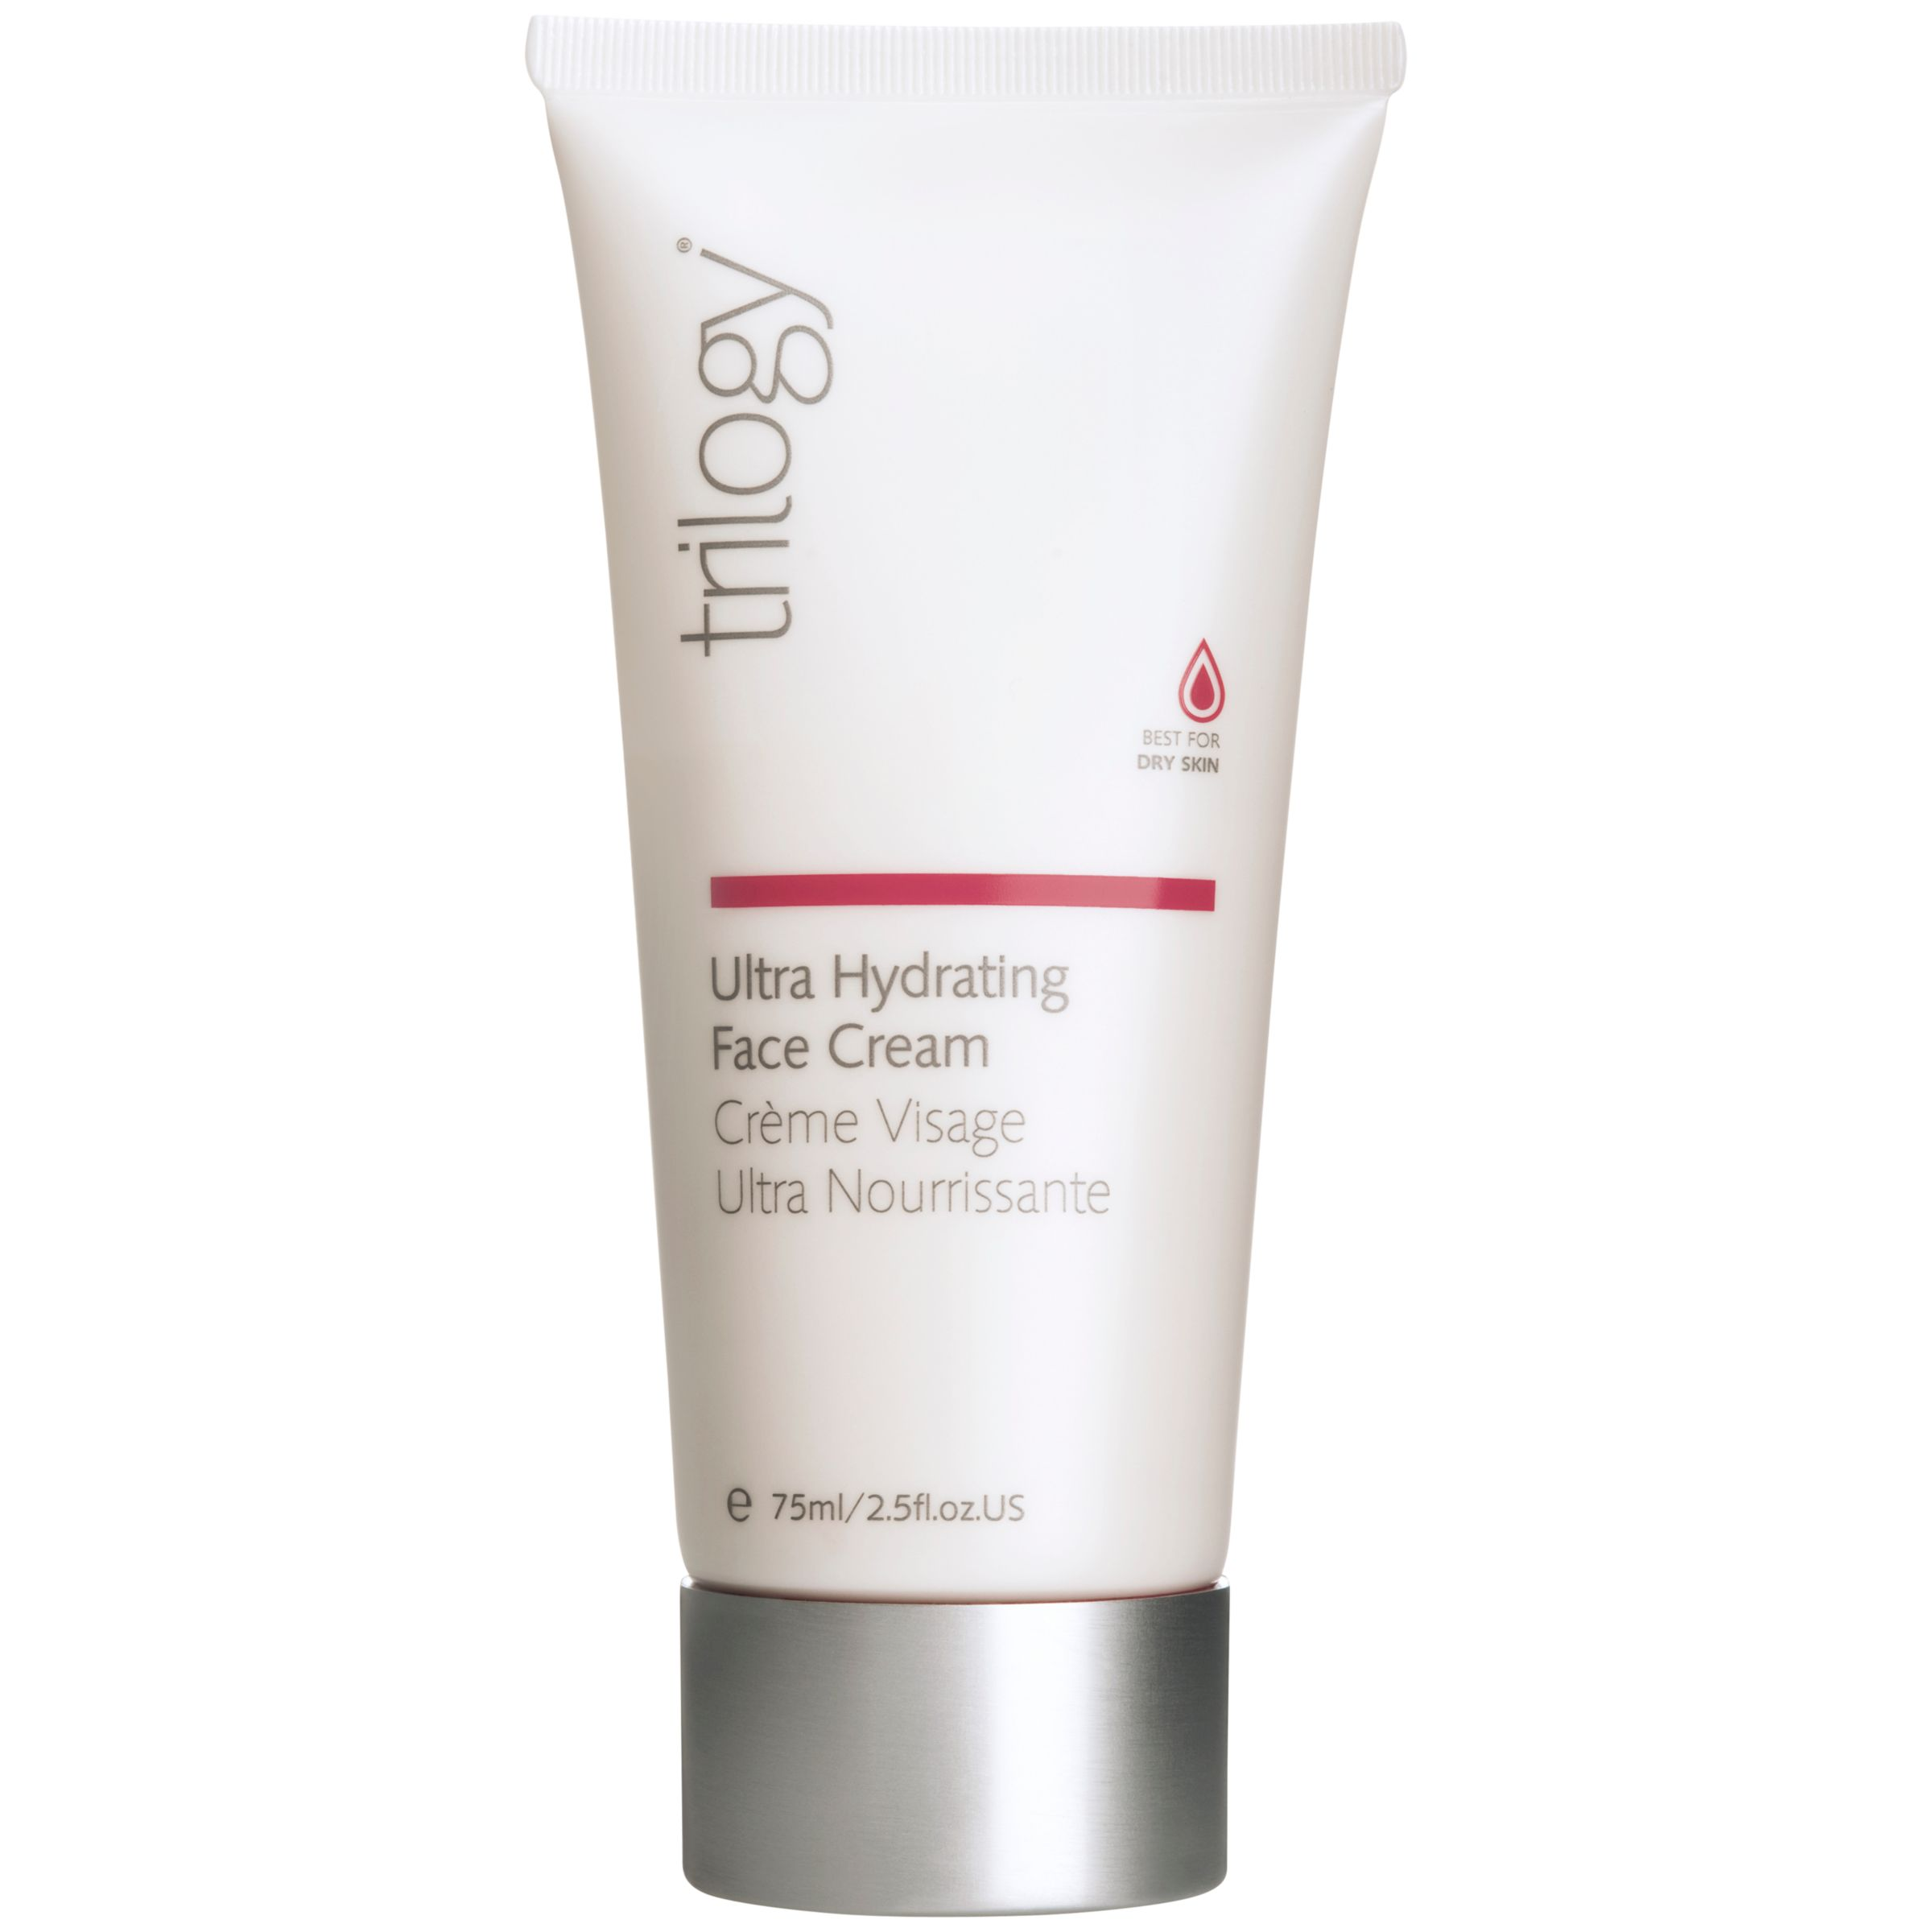 Trilogy Trilogy Ultra Hydrating Face Cream, 75ml